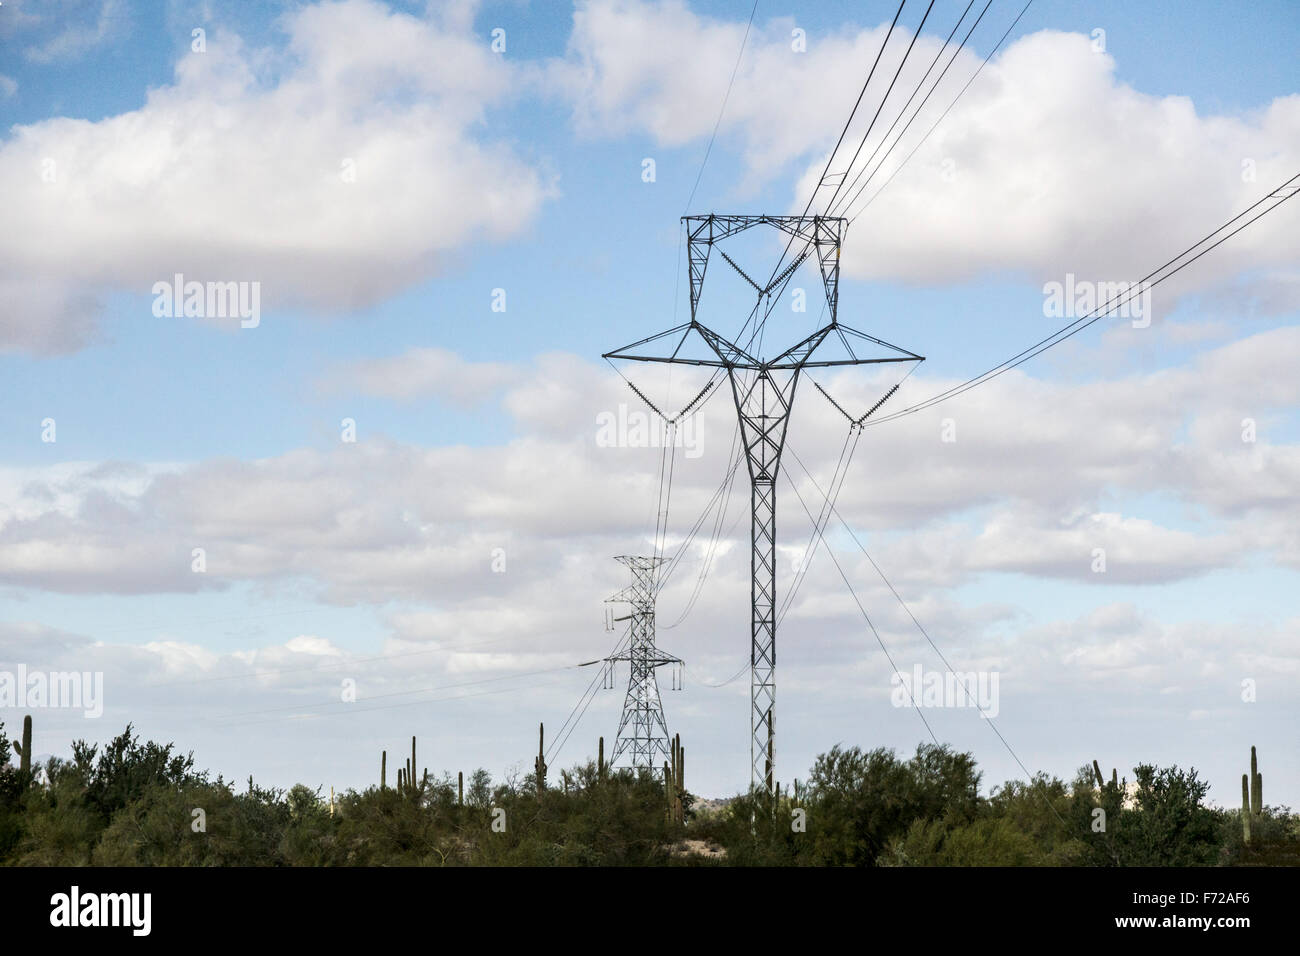 graceful filigree silhouette of towers carrying high tension voltage power lines across Sonora desert in Arizona - Stock Image